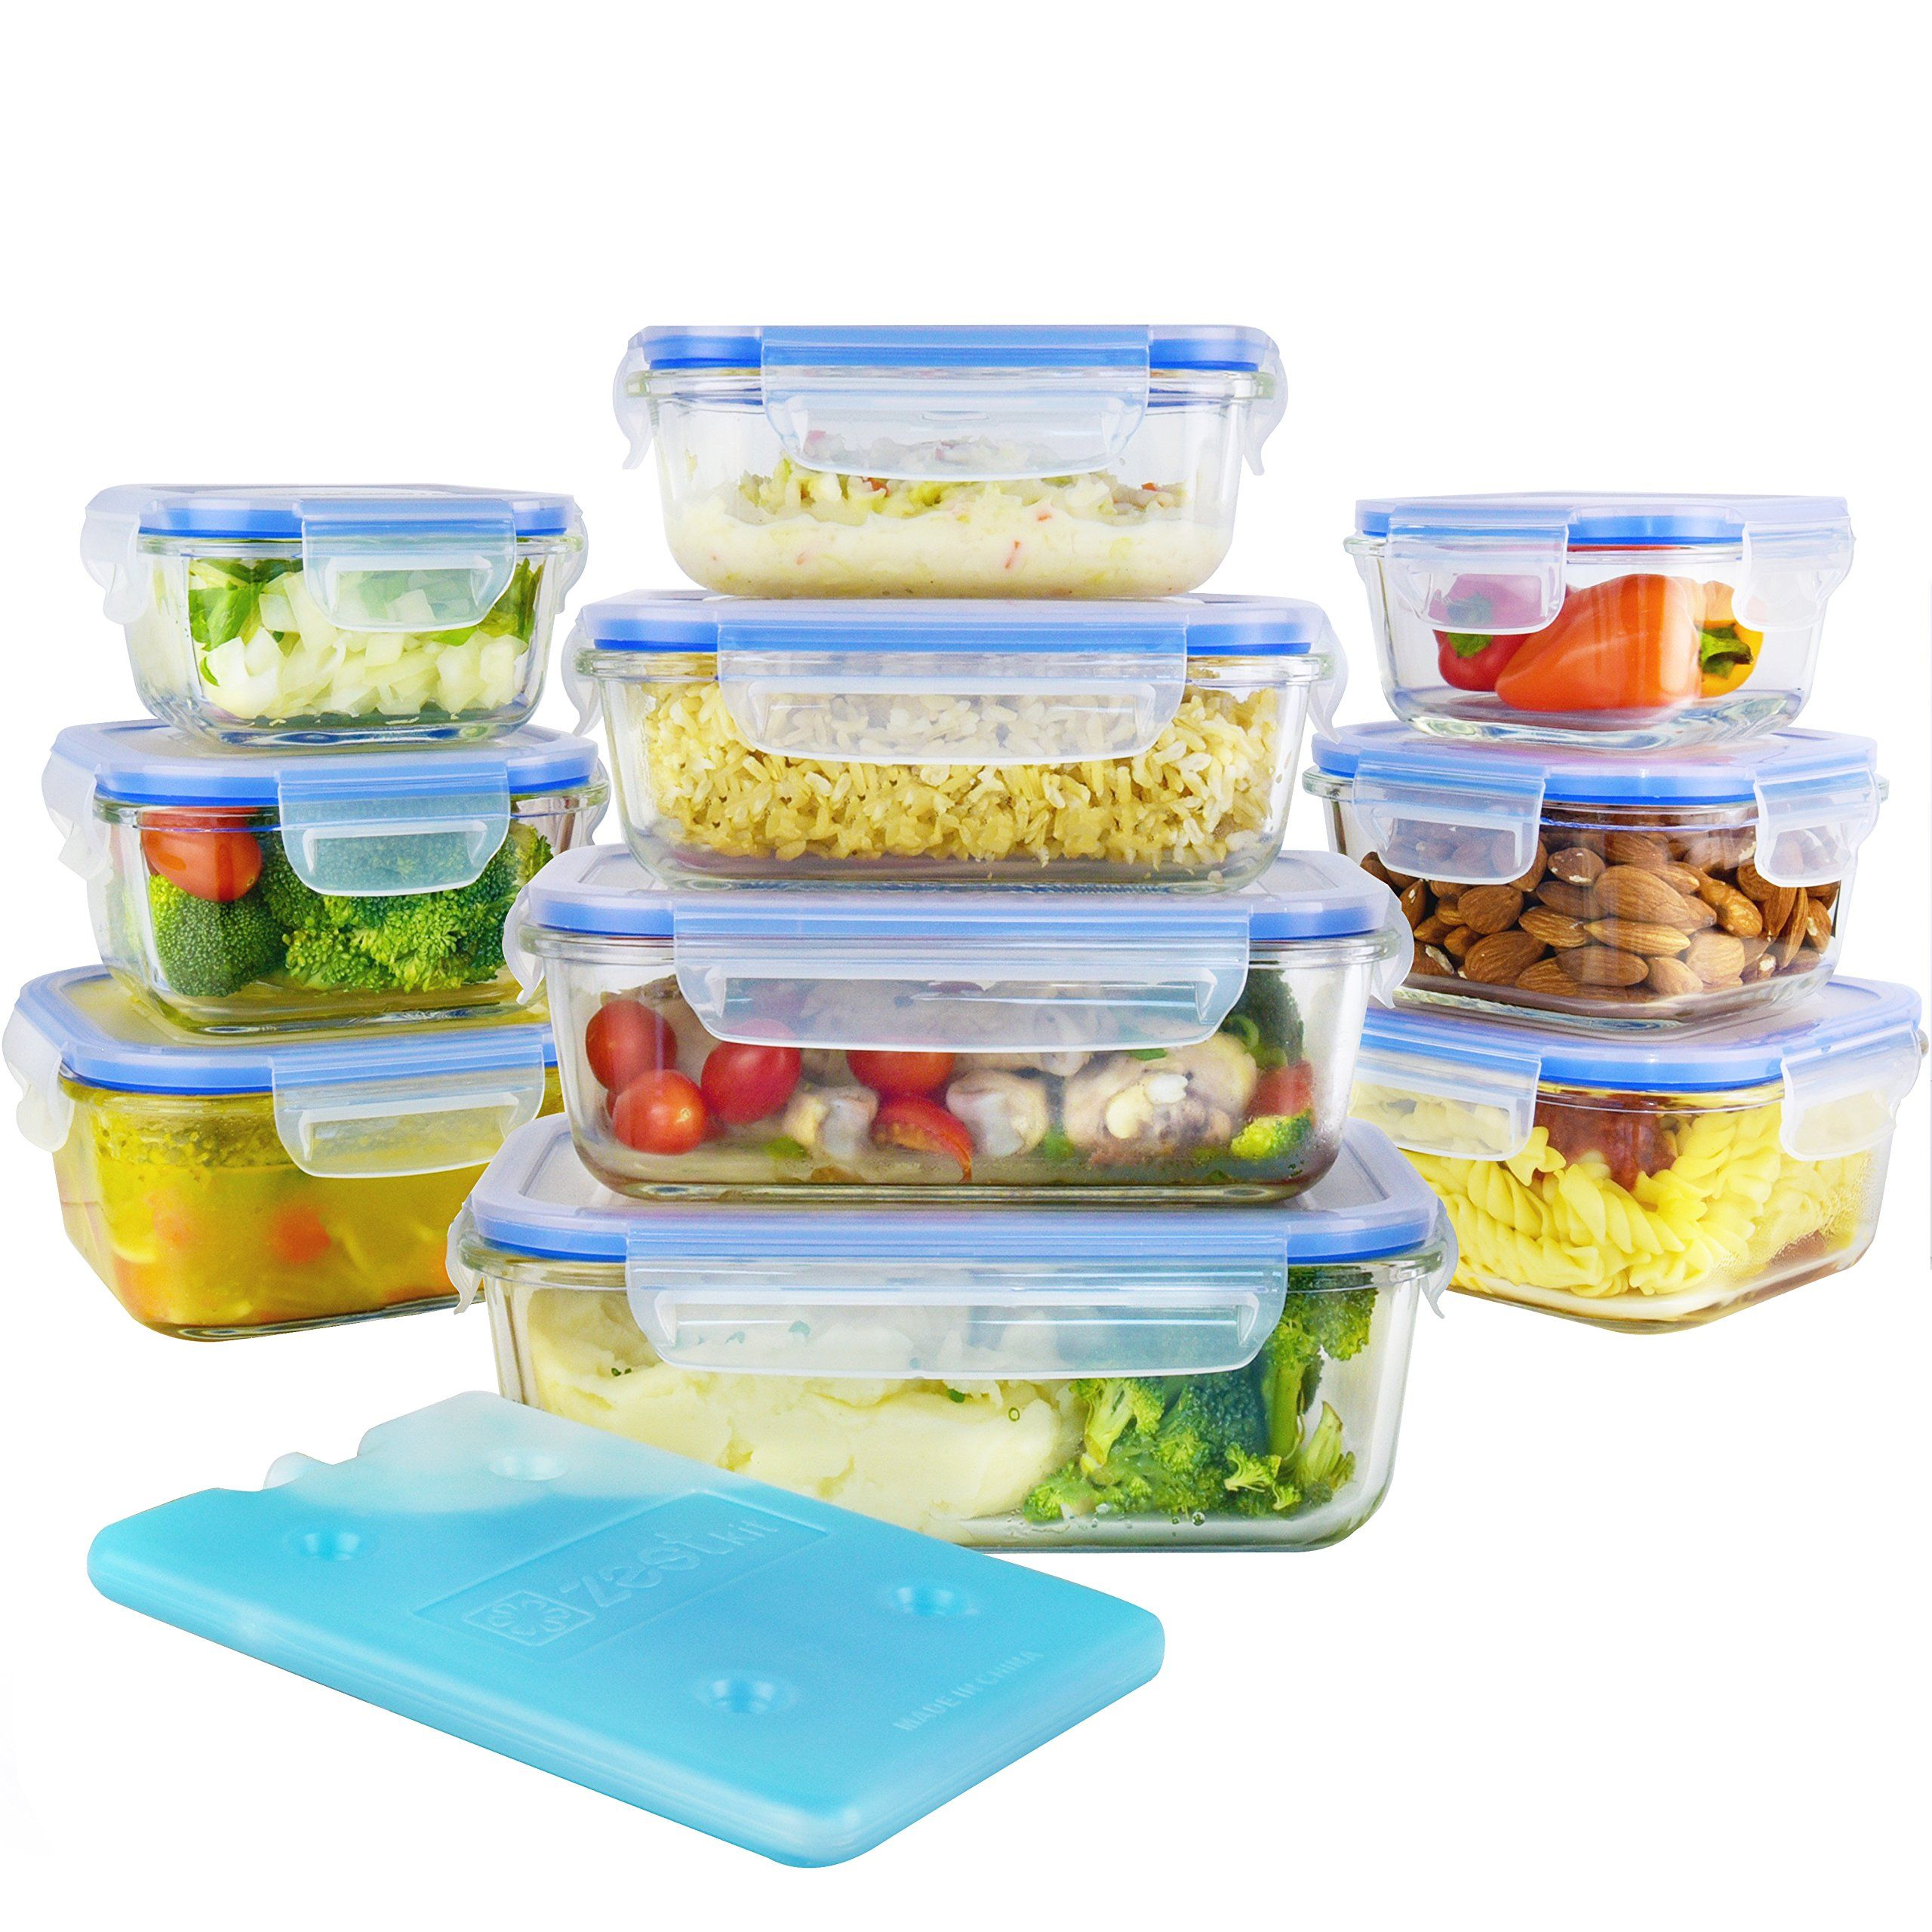 Glass Food Storage Containers With Locking Lids Glass Food Storage Containers Set With Airtight Locking Lids & Free